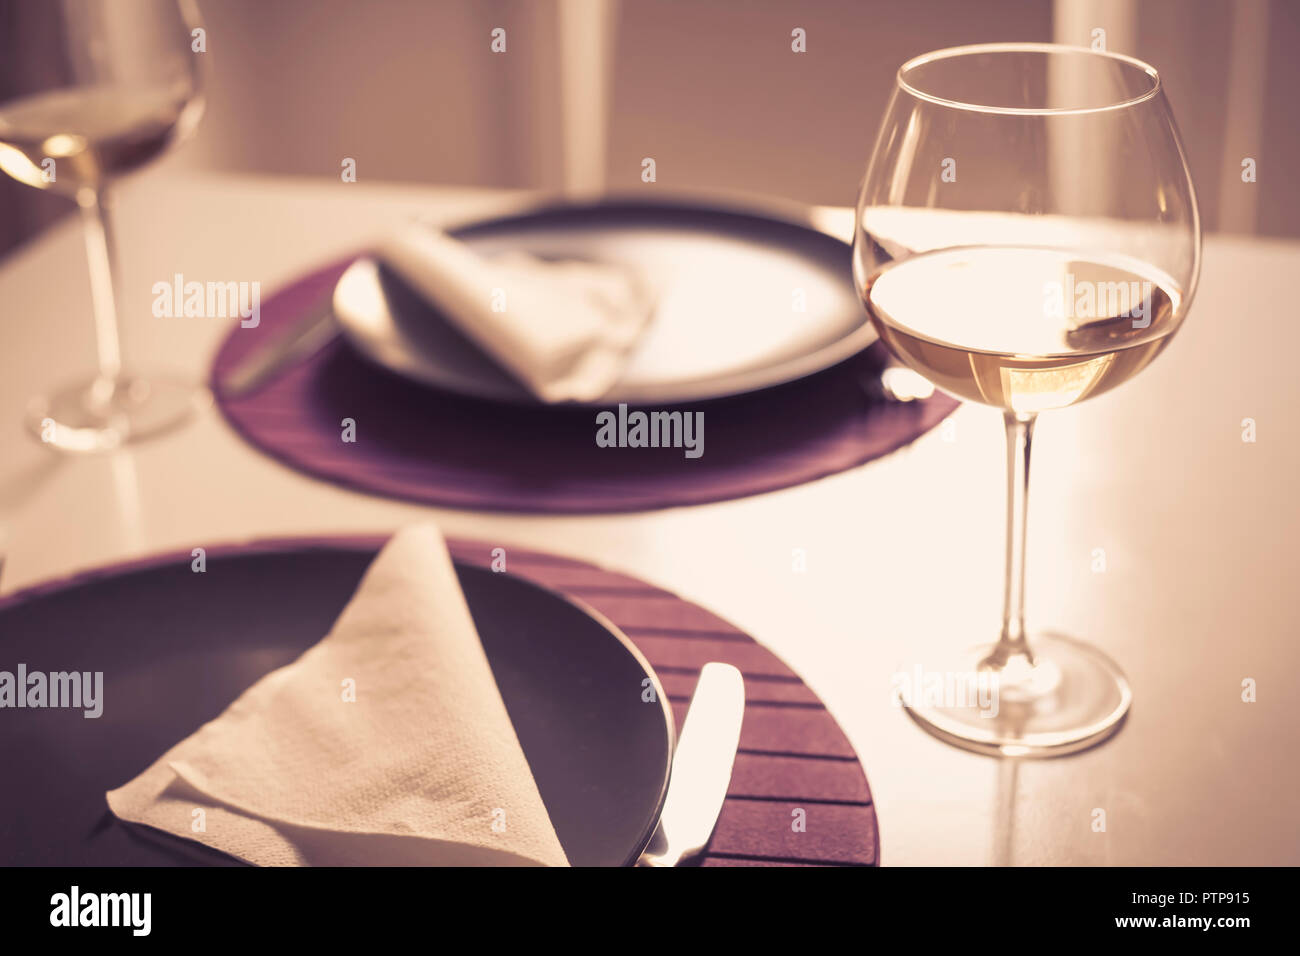 Romantic memories - Table setting for Two - Wine glasses with white wine - Stock Image